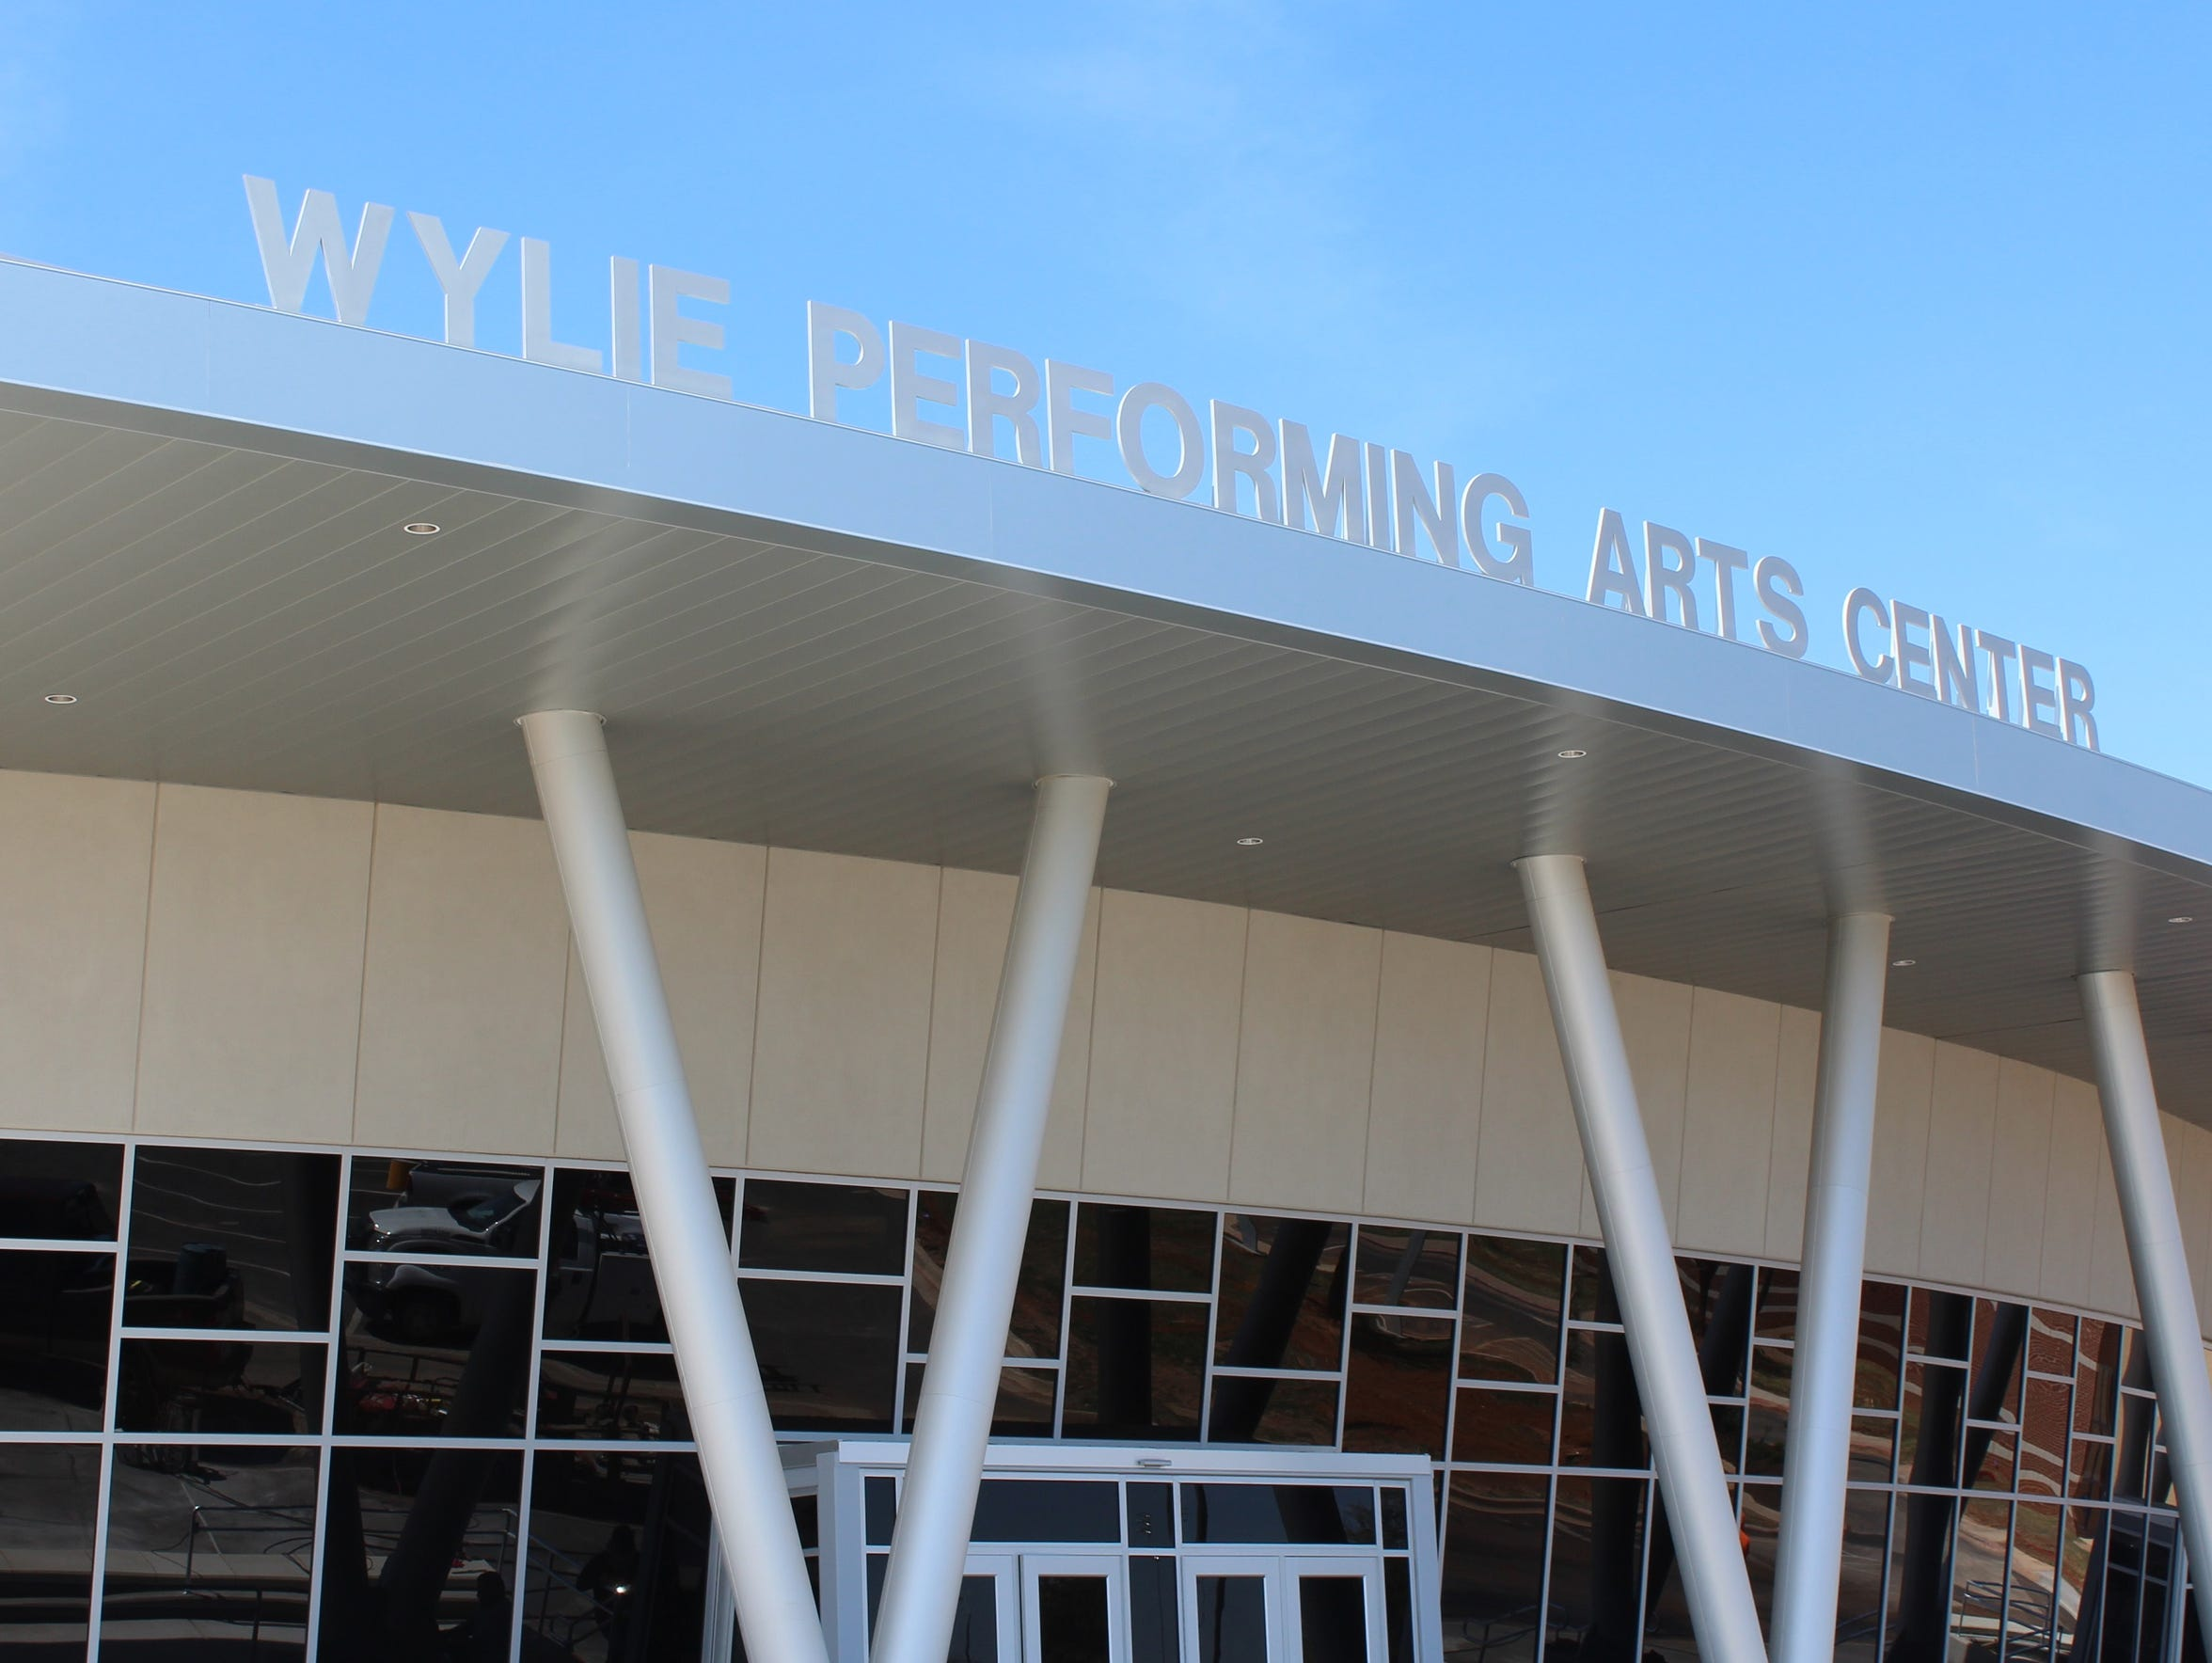 New performing arts center for the Wylie ISD.